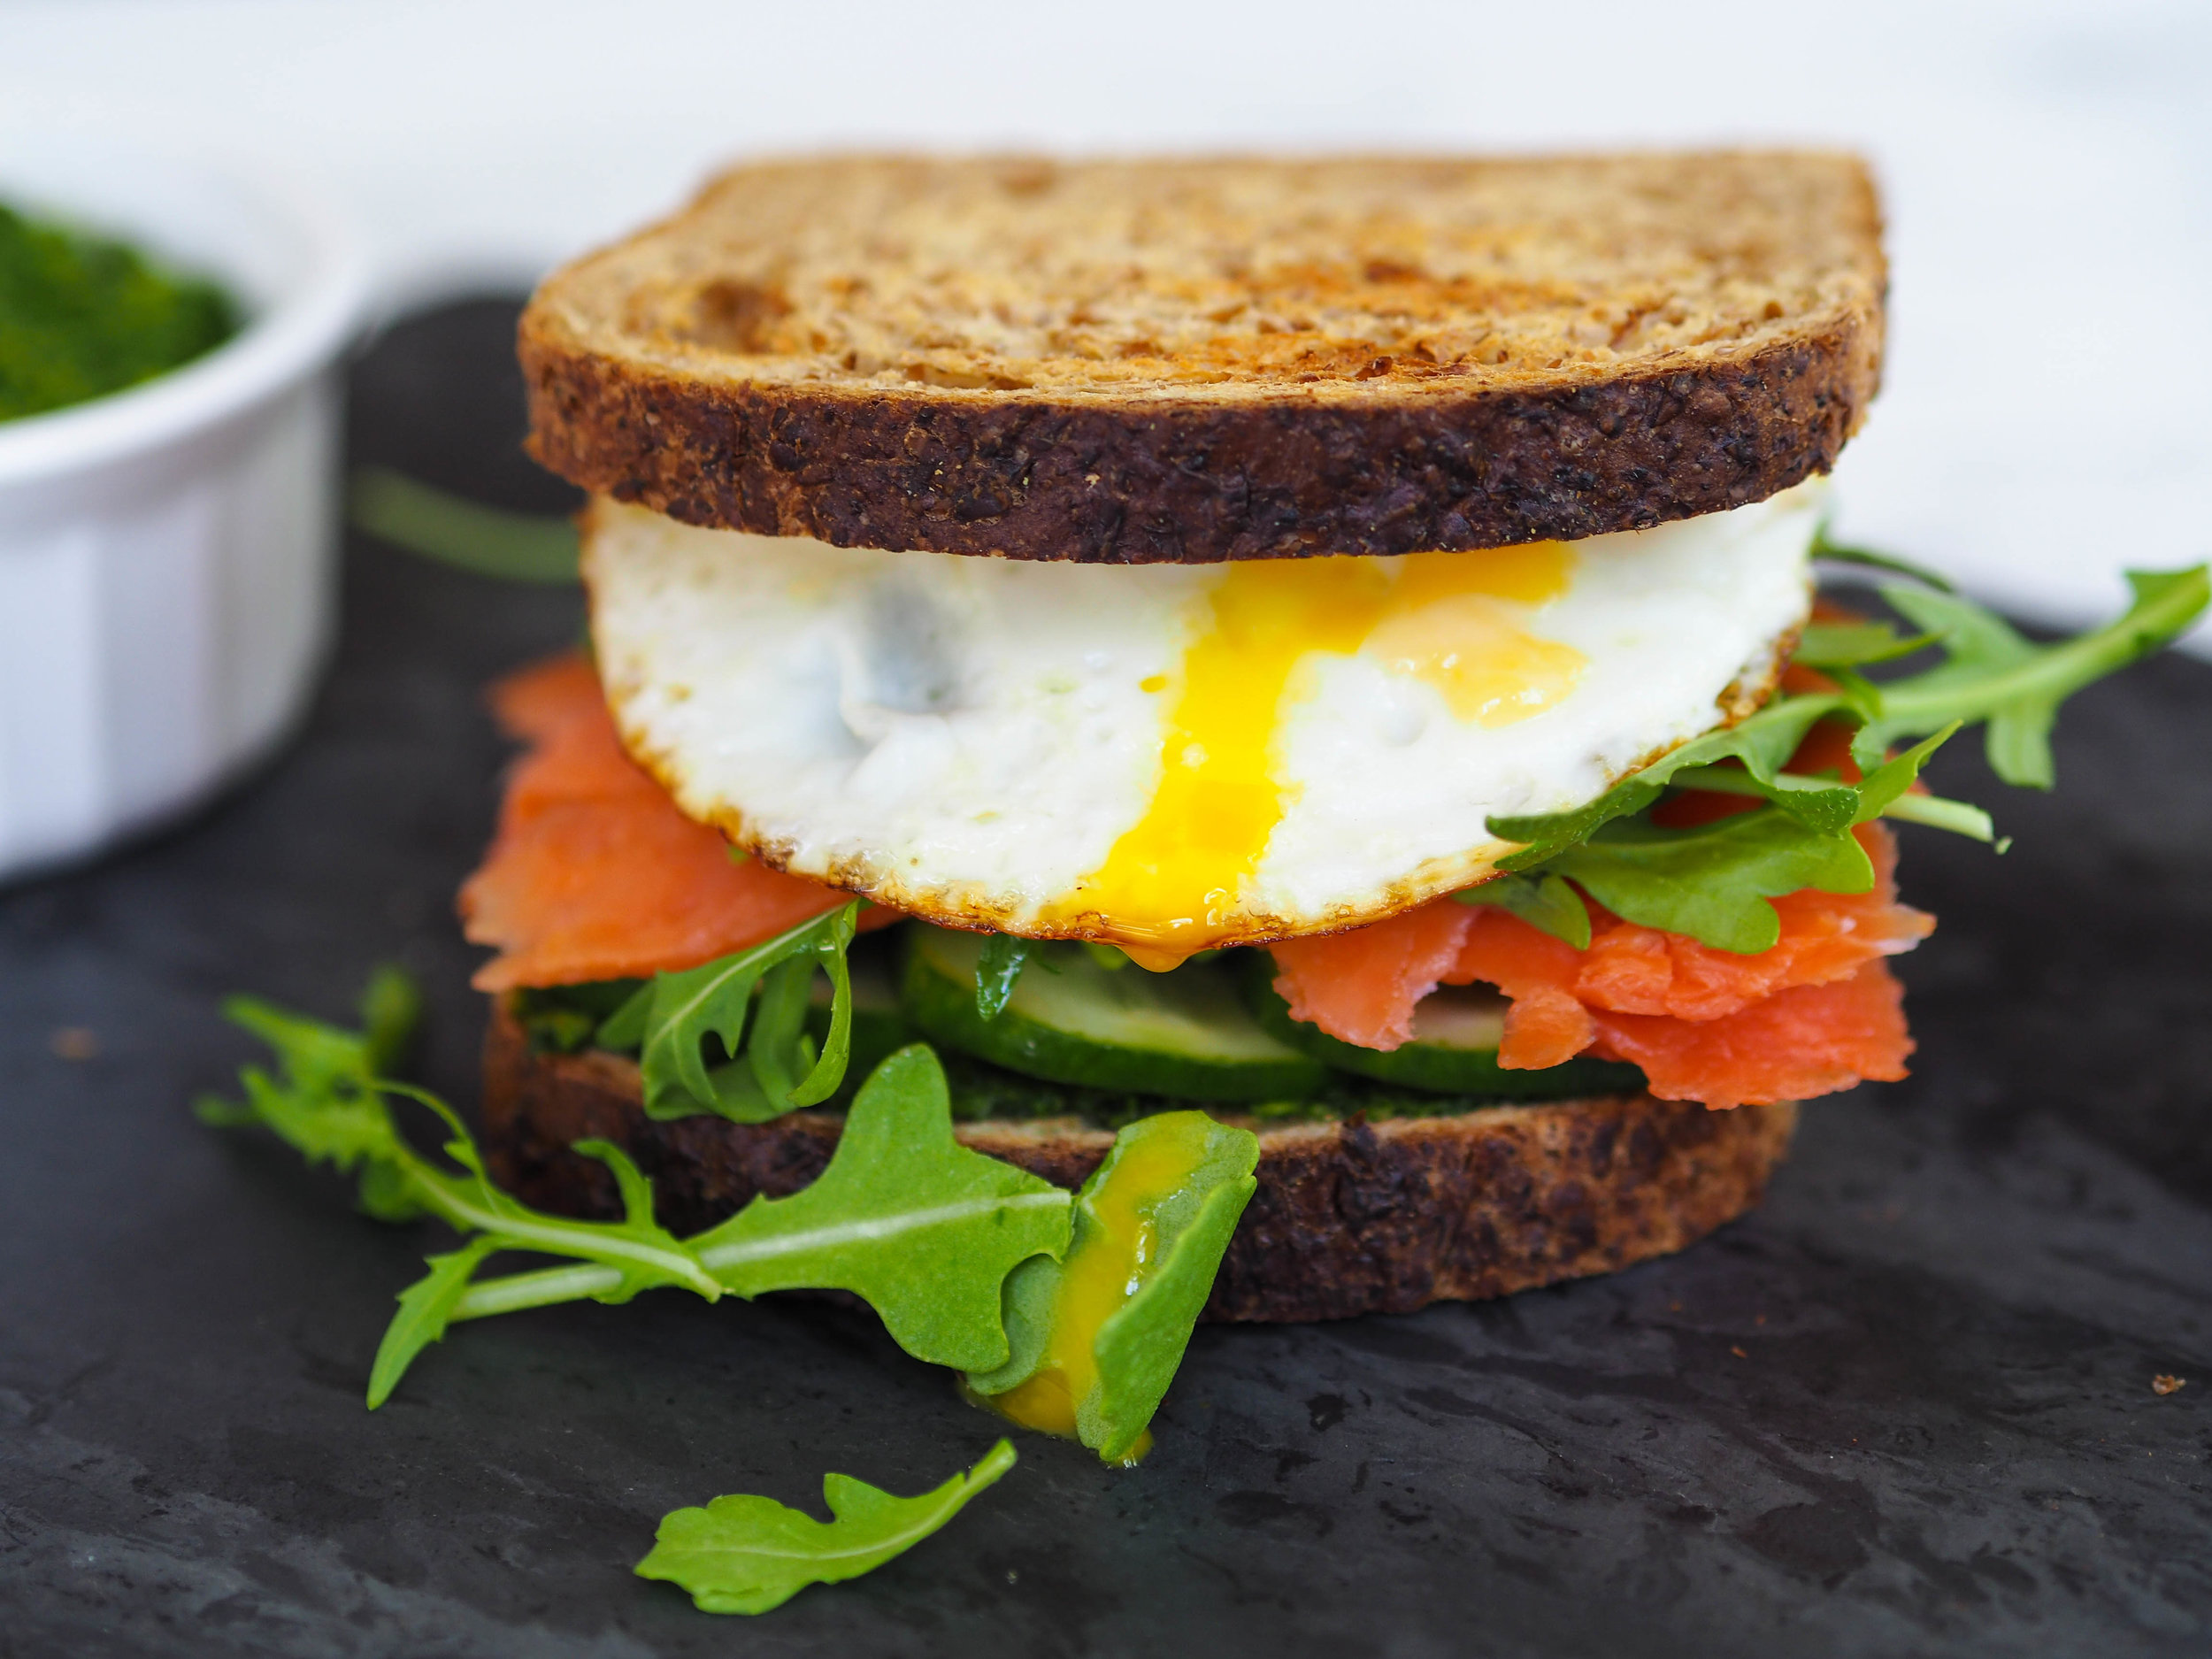 smoked-salmon-avocado-breakfast-sandwich-4-2.jpg